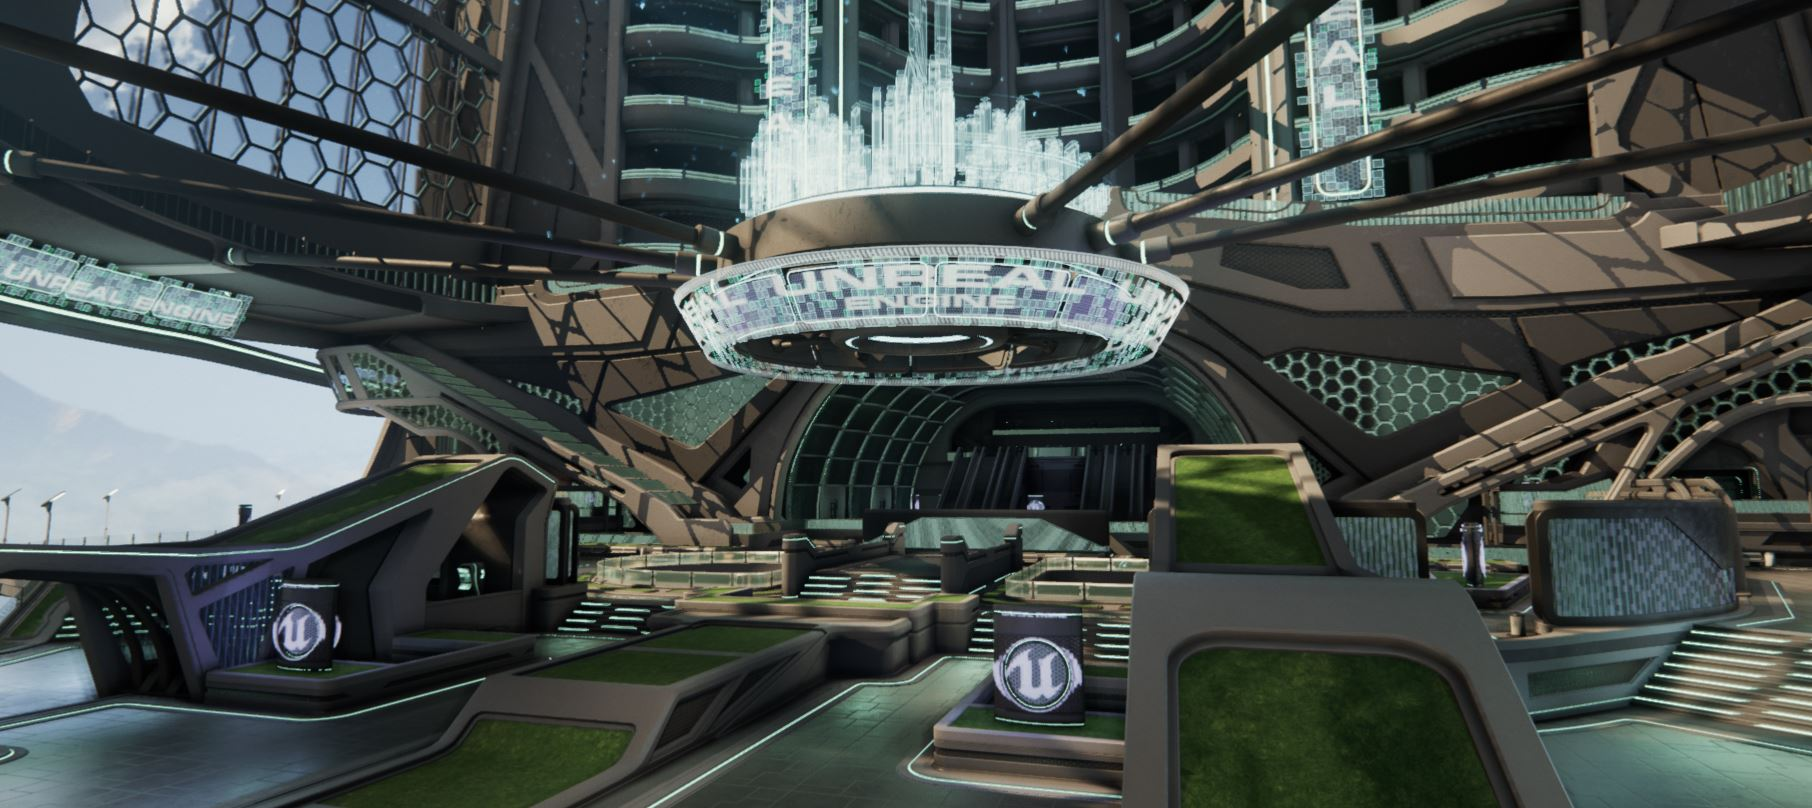 Download 13 Beautiful Unreal Engine 4 Demos for the Oculus Rift DK2